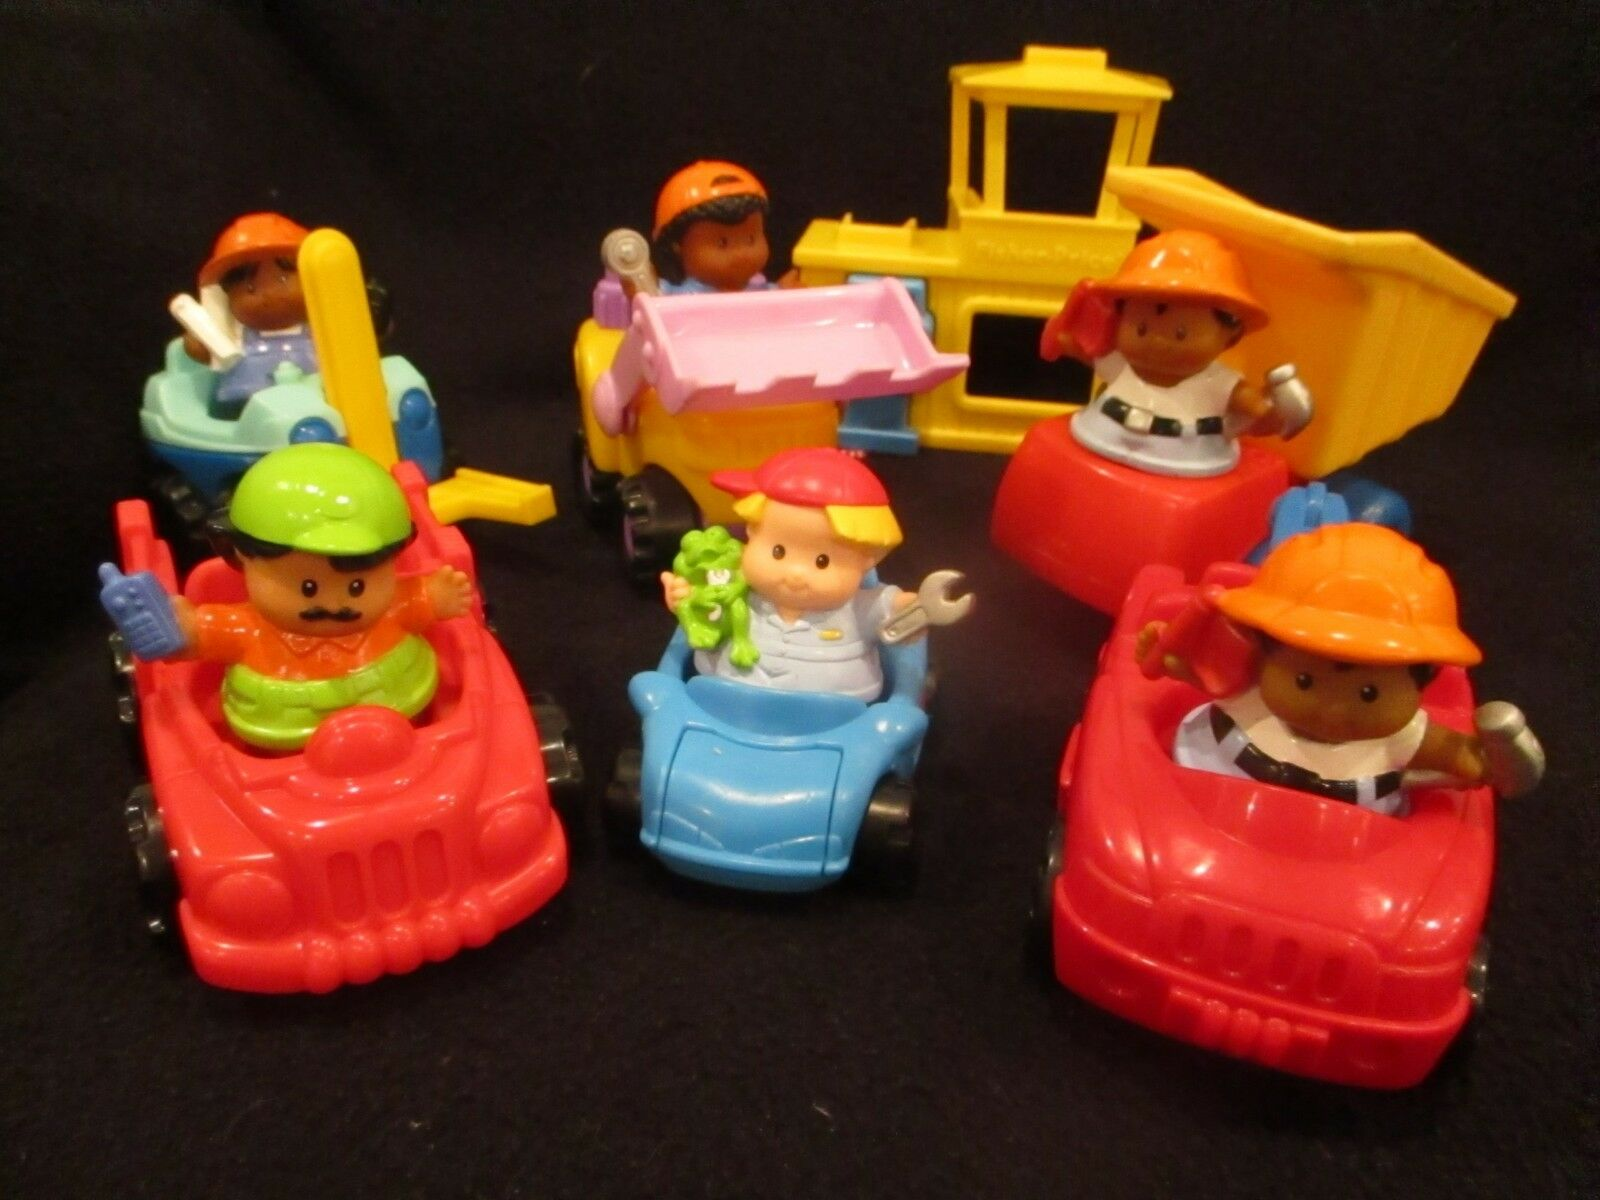 Lot of fisher price little tykes little people construction vehicles and people